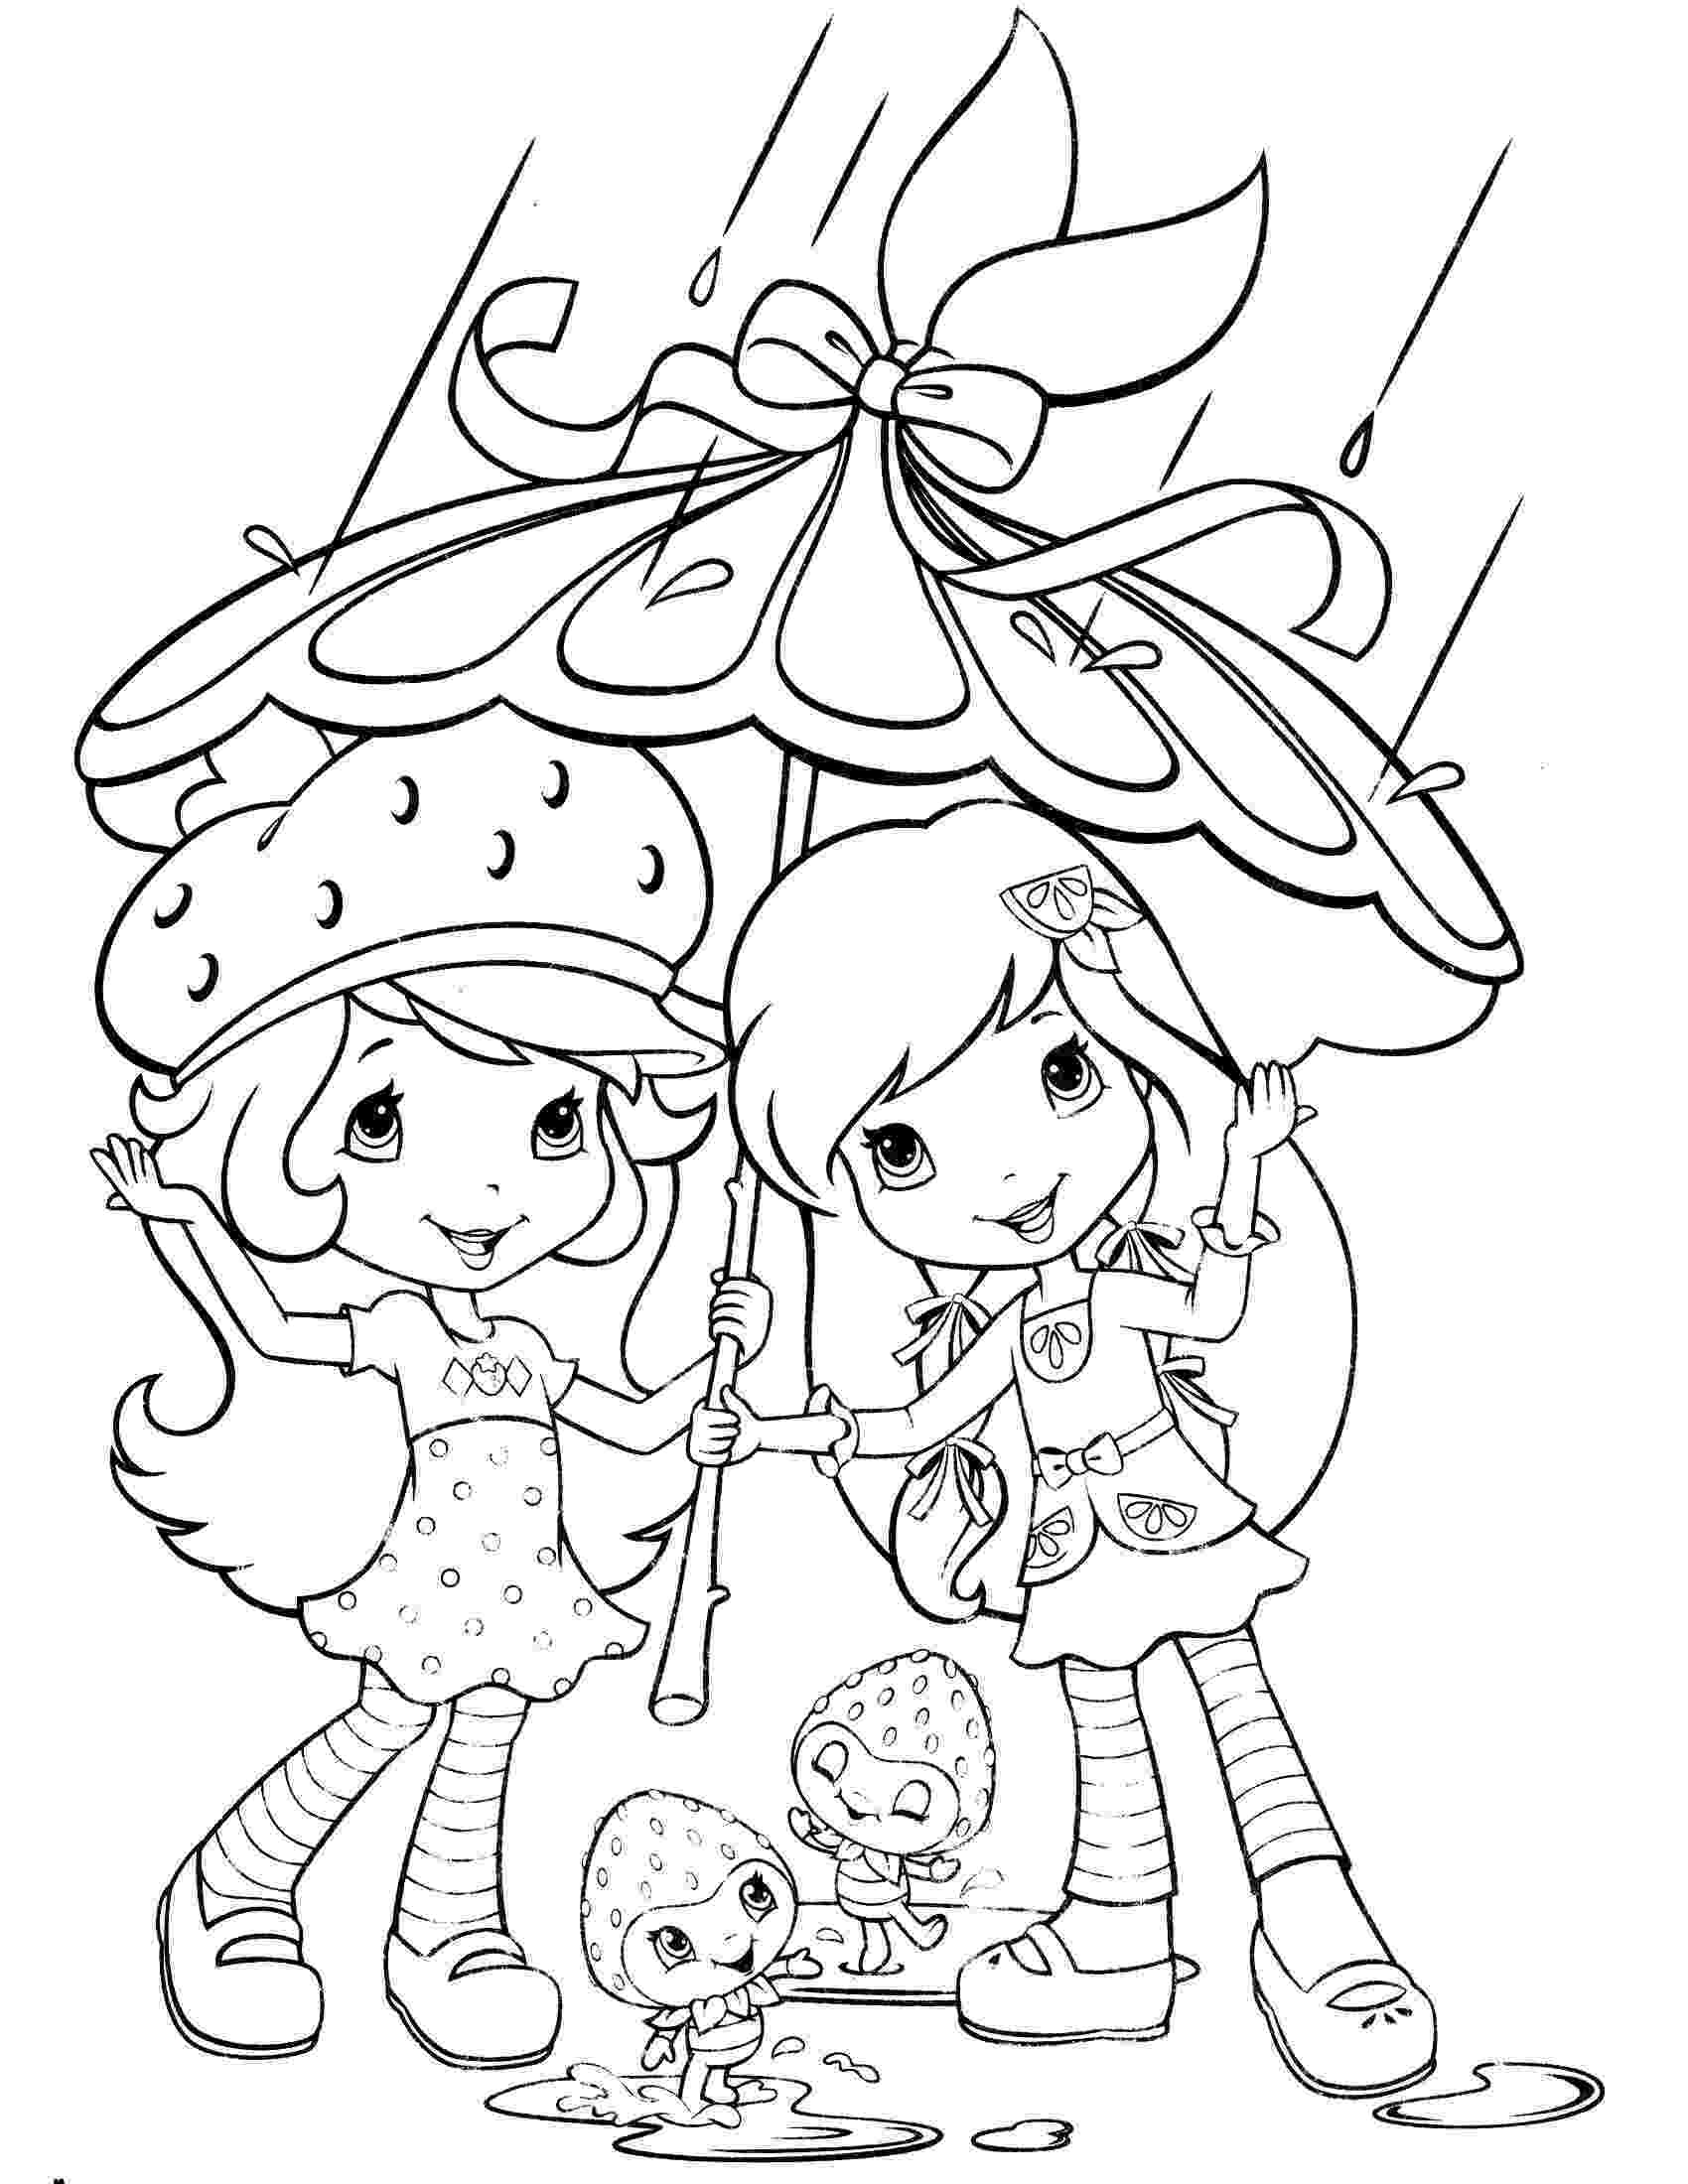 pictures of strawberry shortcake strawberry shortcake coloring page strawberry shortcake shortcake strawberry of pictures